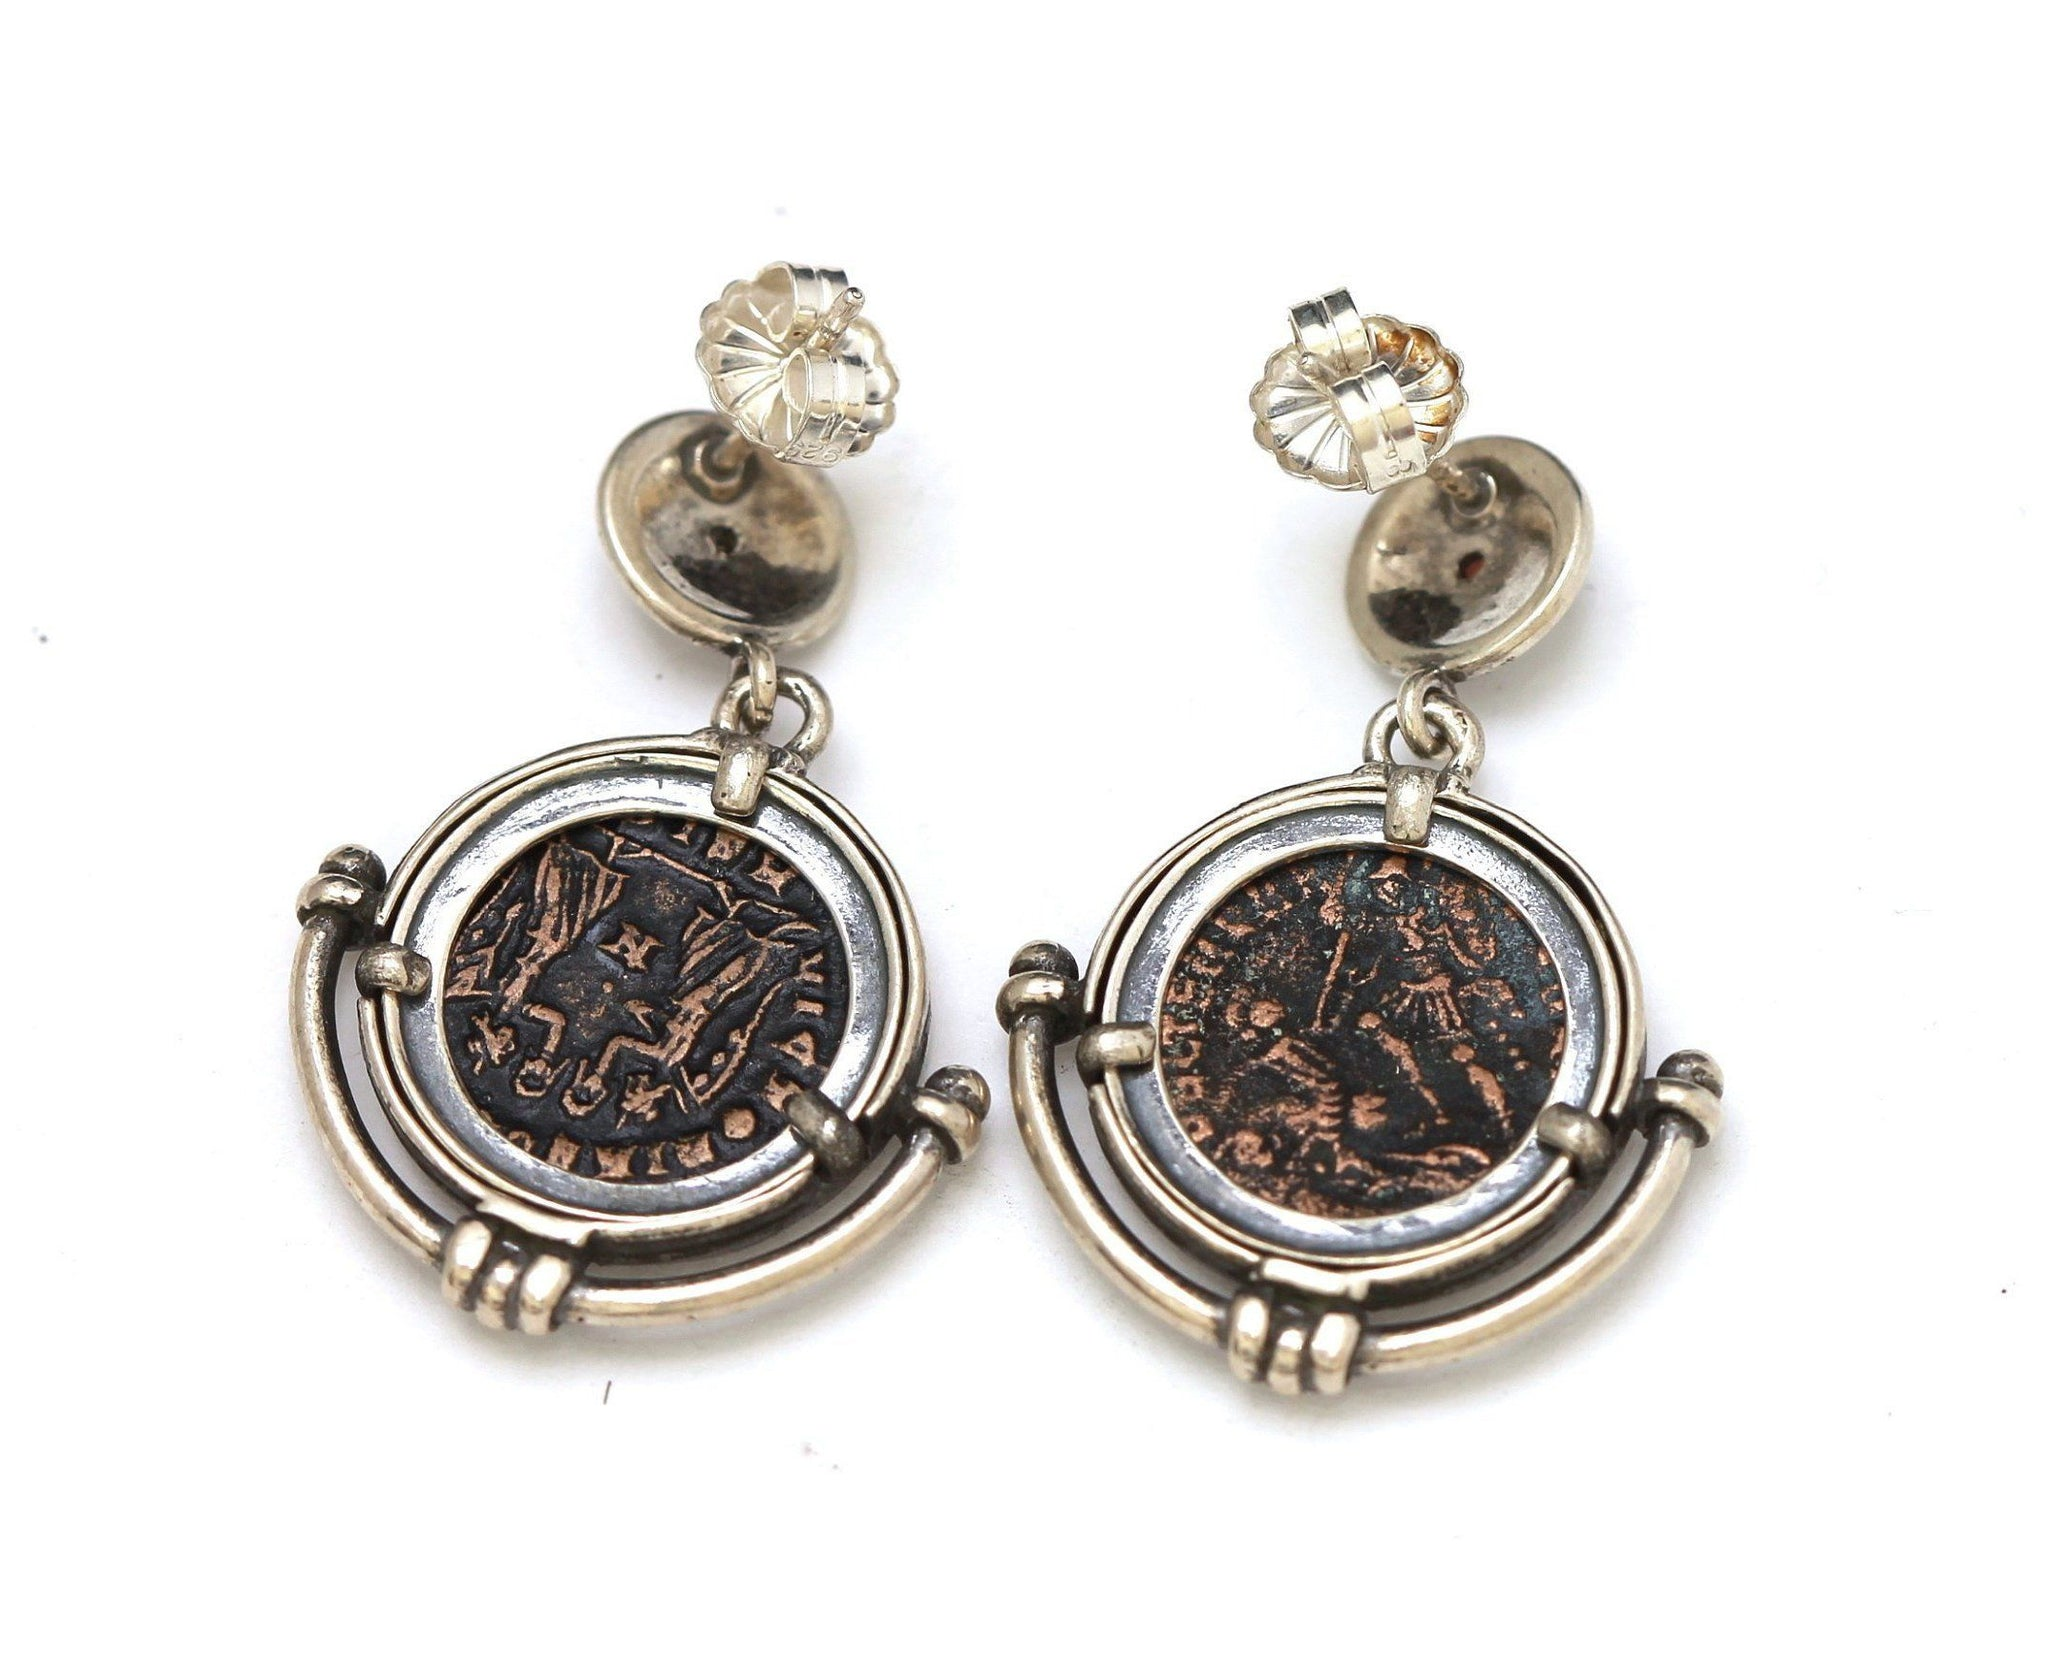 Roman Bronze Coins, Silver Earrings, Genuine Ancient Coins, With Certificate 6502 - Erez Ancient Coin Jewelry, ancient coin jewelry, men jewelry, genuine ancient coins, made in the US